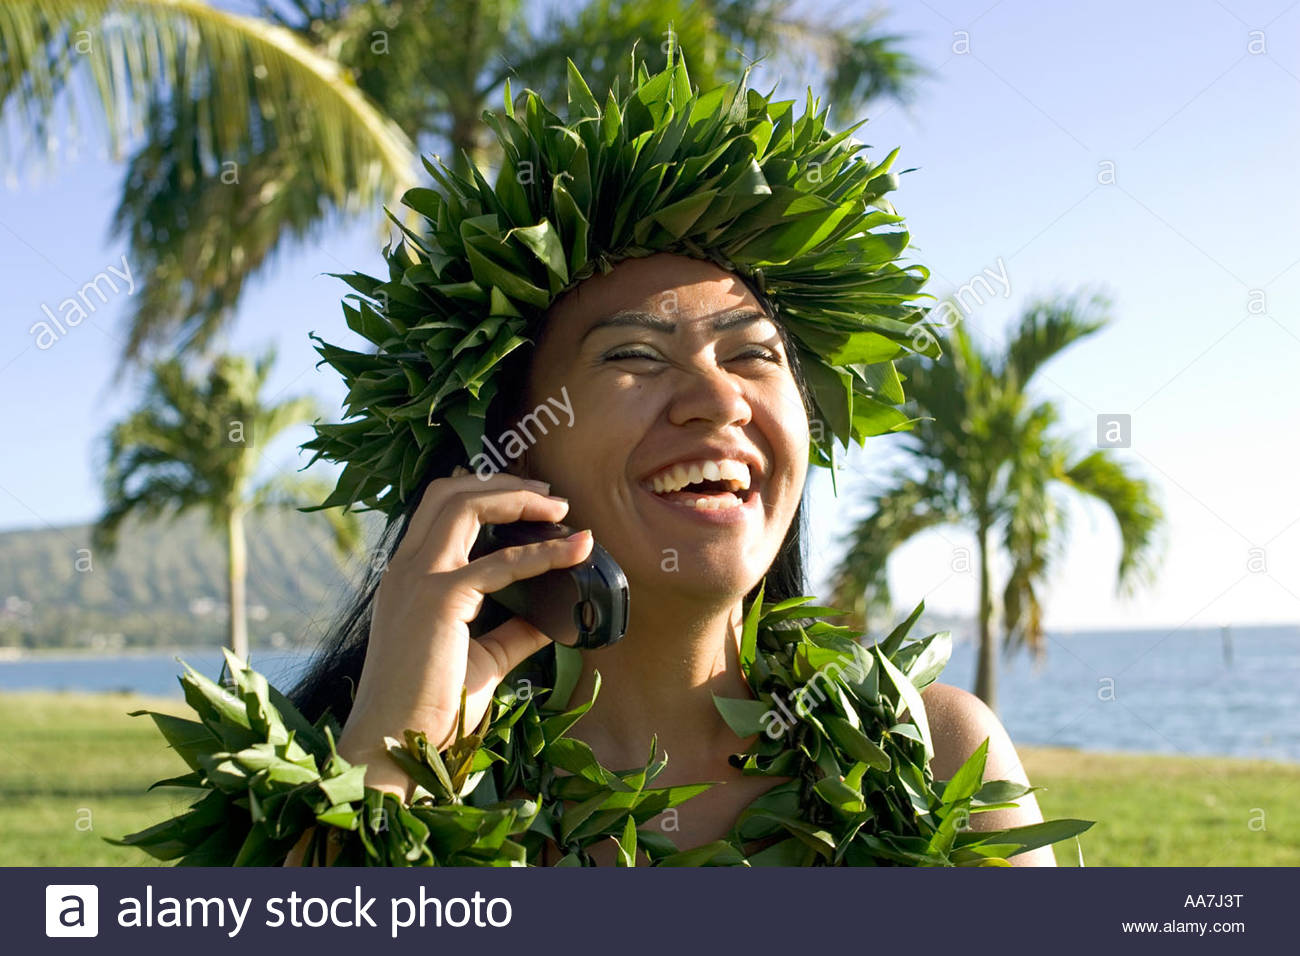 Hula dancer talking on her cell phone - Stock Image